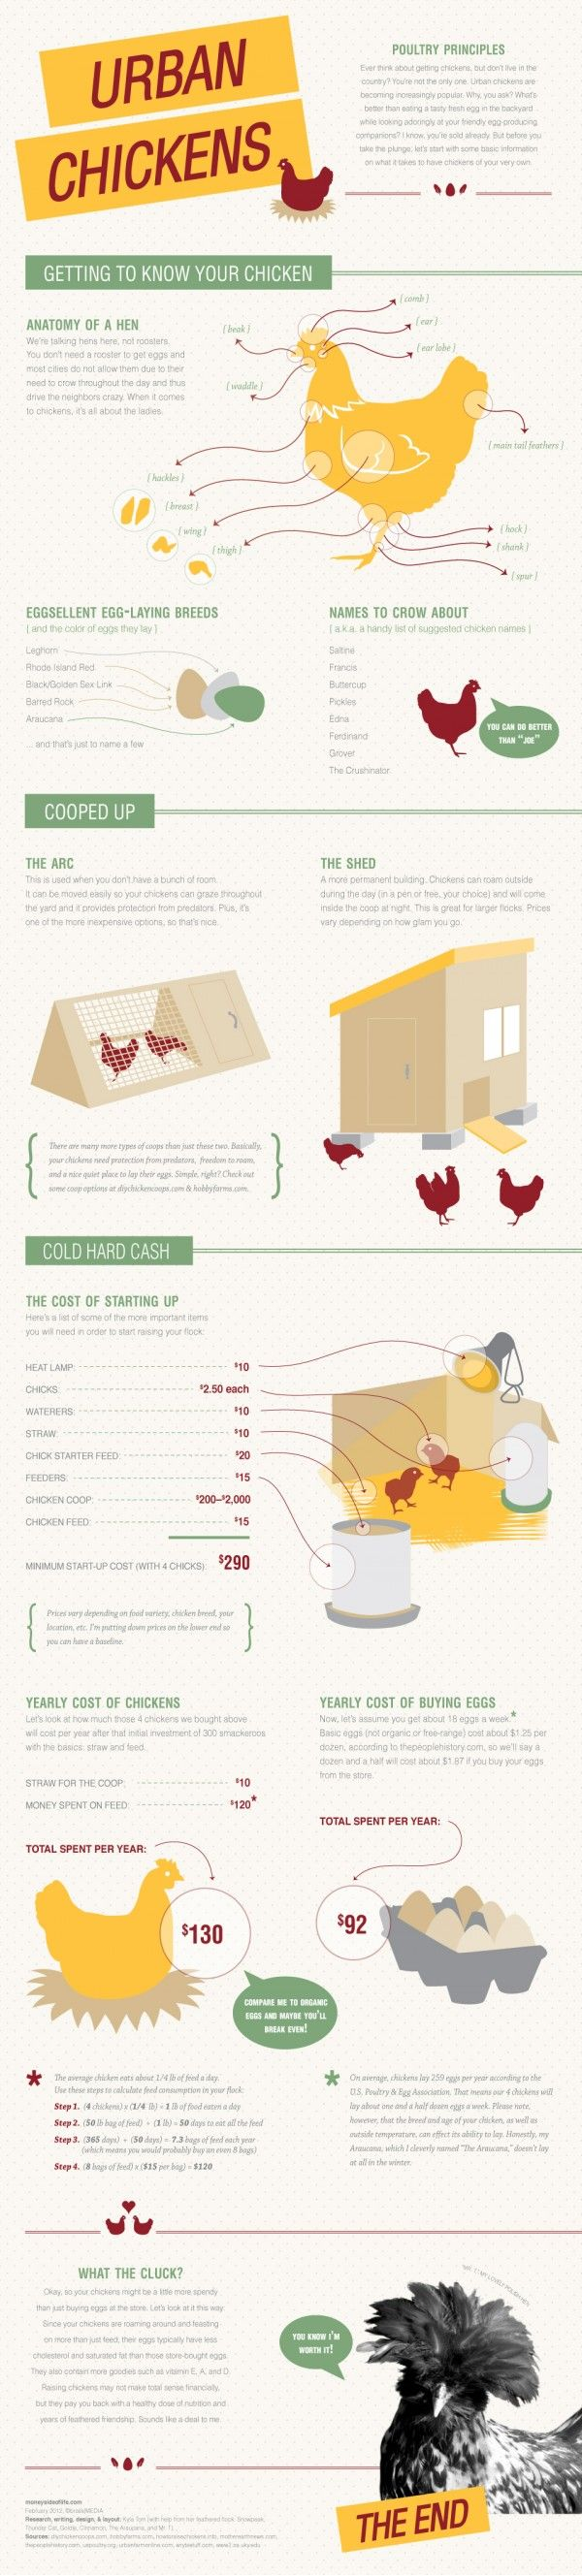 #urbanchickens  - An Infographic that informs pet, chicken and egg enthusiasts that keeping a chicken or chickens, is not as bizarre an idea as most people think it is.  From the anatomy to suitable names to the cost and management guidelines for starting one's own egg business, this Infographic has everything you would want to know prior to engaging in anything to do with chickens.